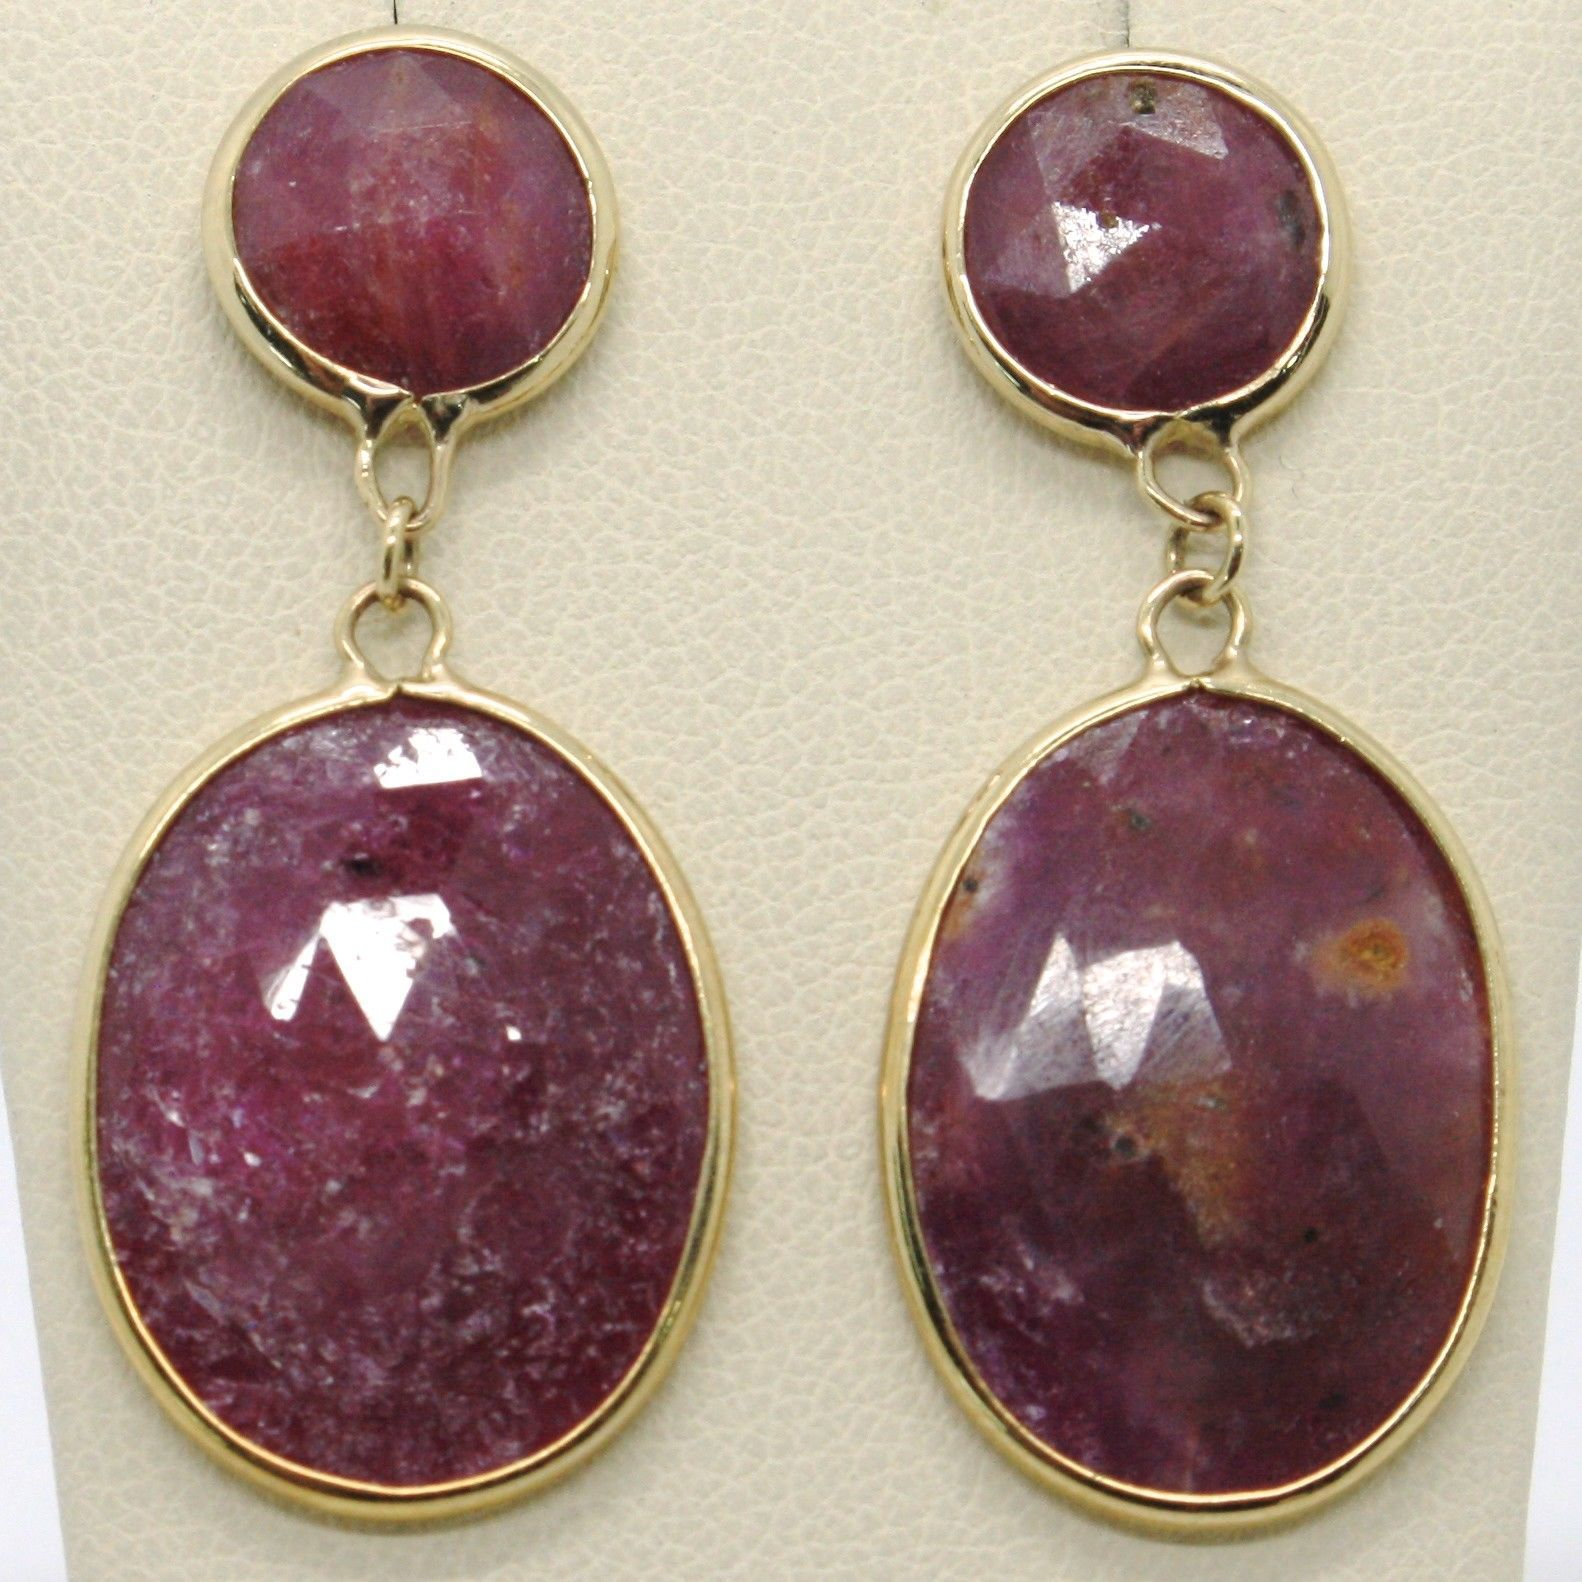 9K YELLOW GOLD PENDANT EARRINGS, FACETED FLAT ROUND & OVAL RED RUBY, ITALY MADE